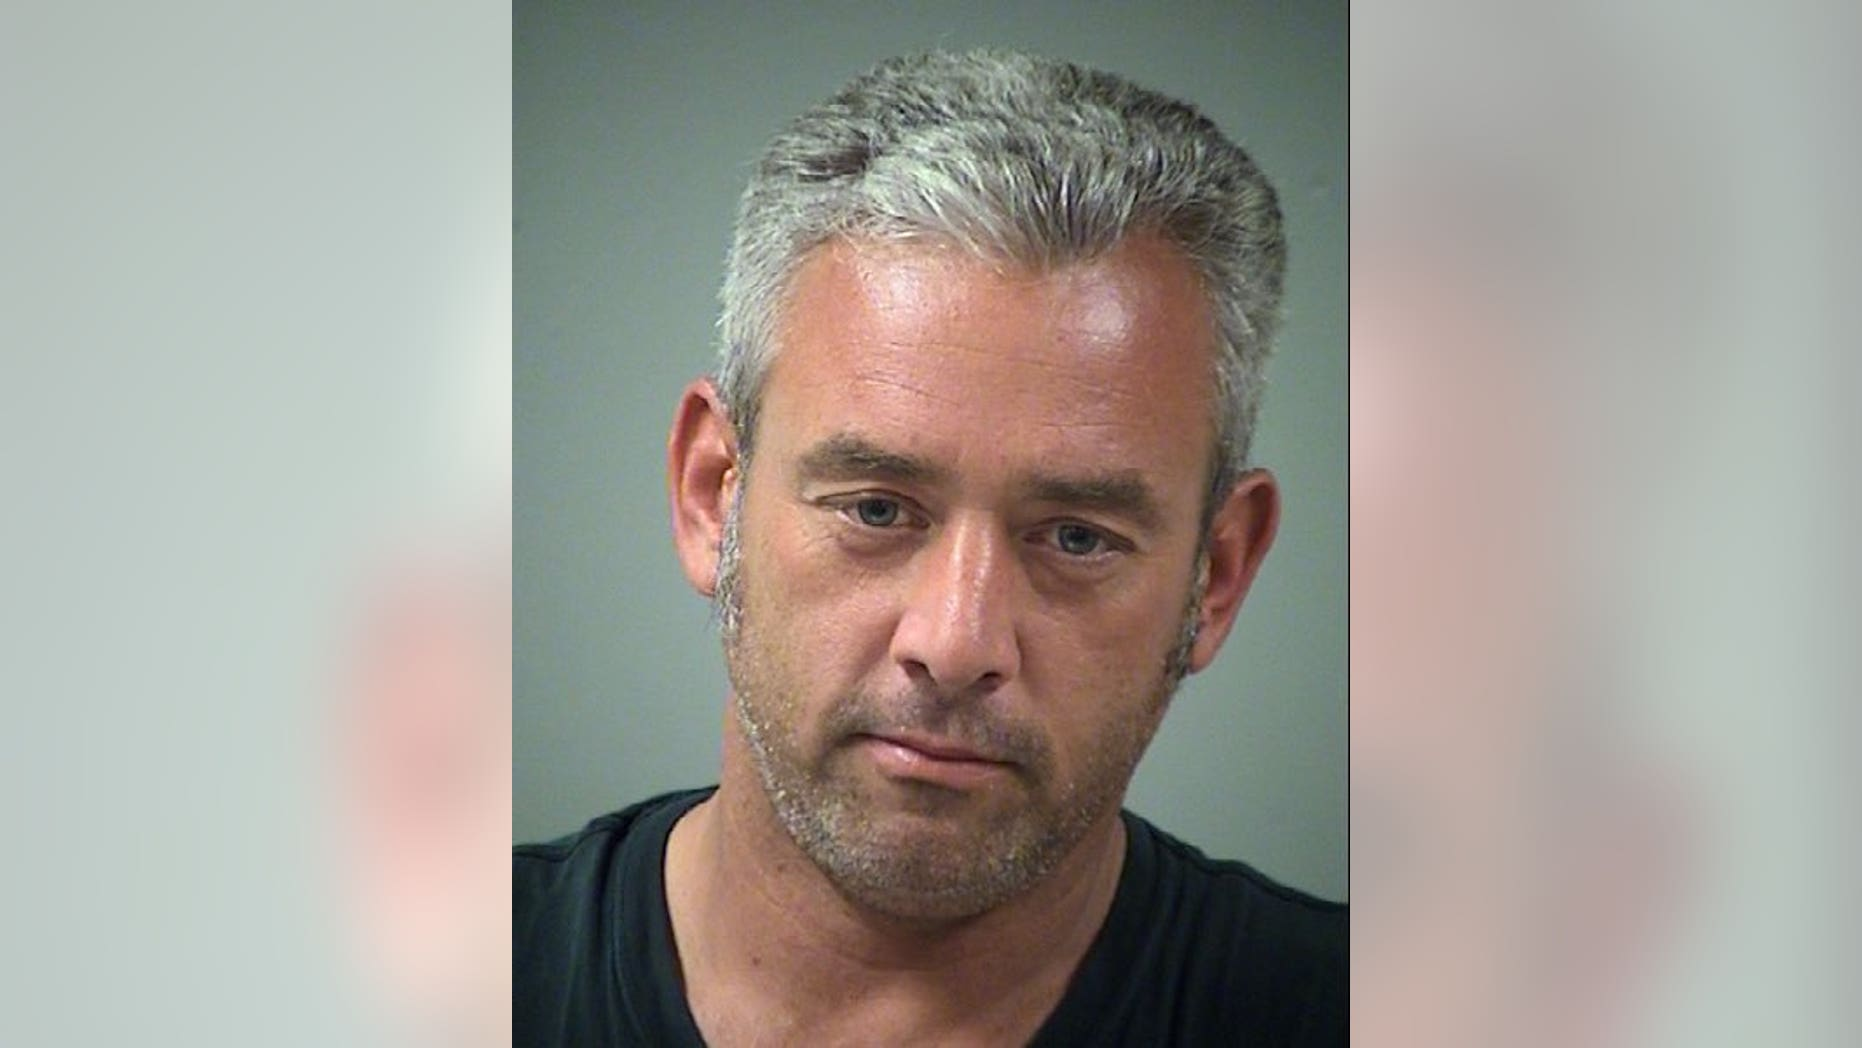 Anthony Shannon, 38, is accused of stealing a gray horn shark from the San Antonio Aquarium on Saturday.